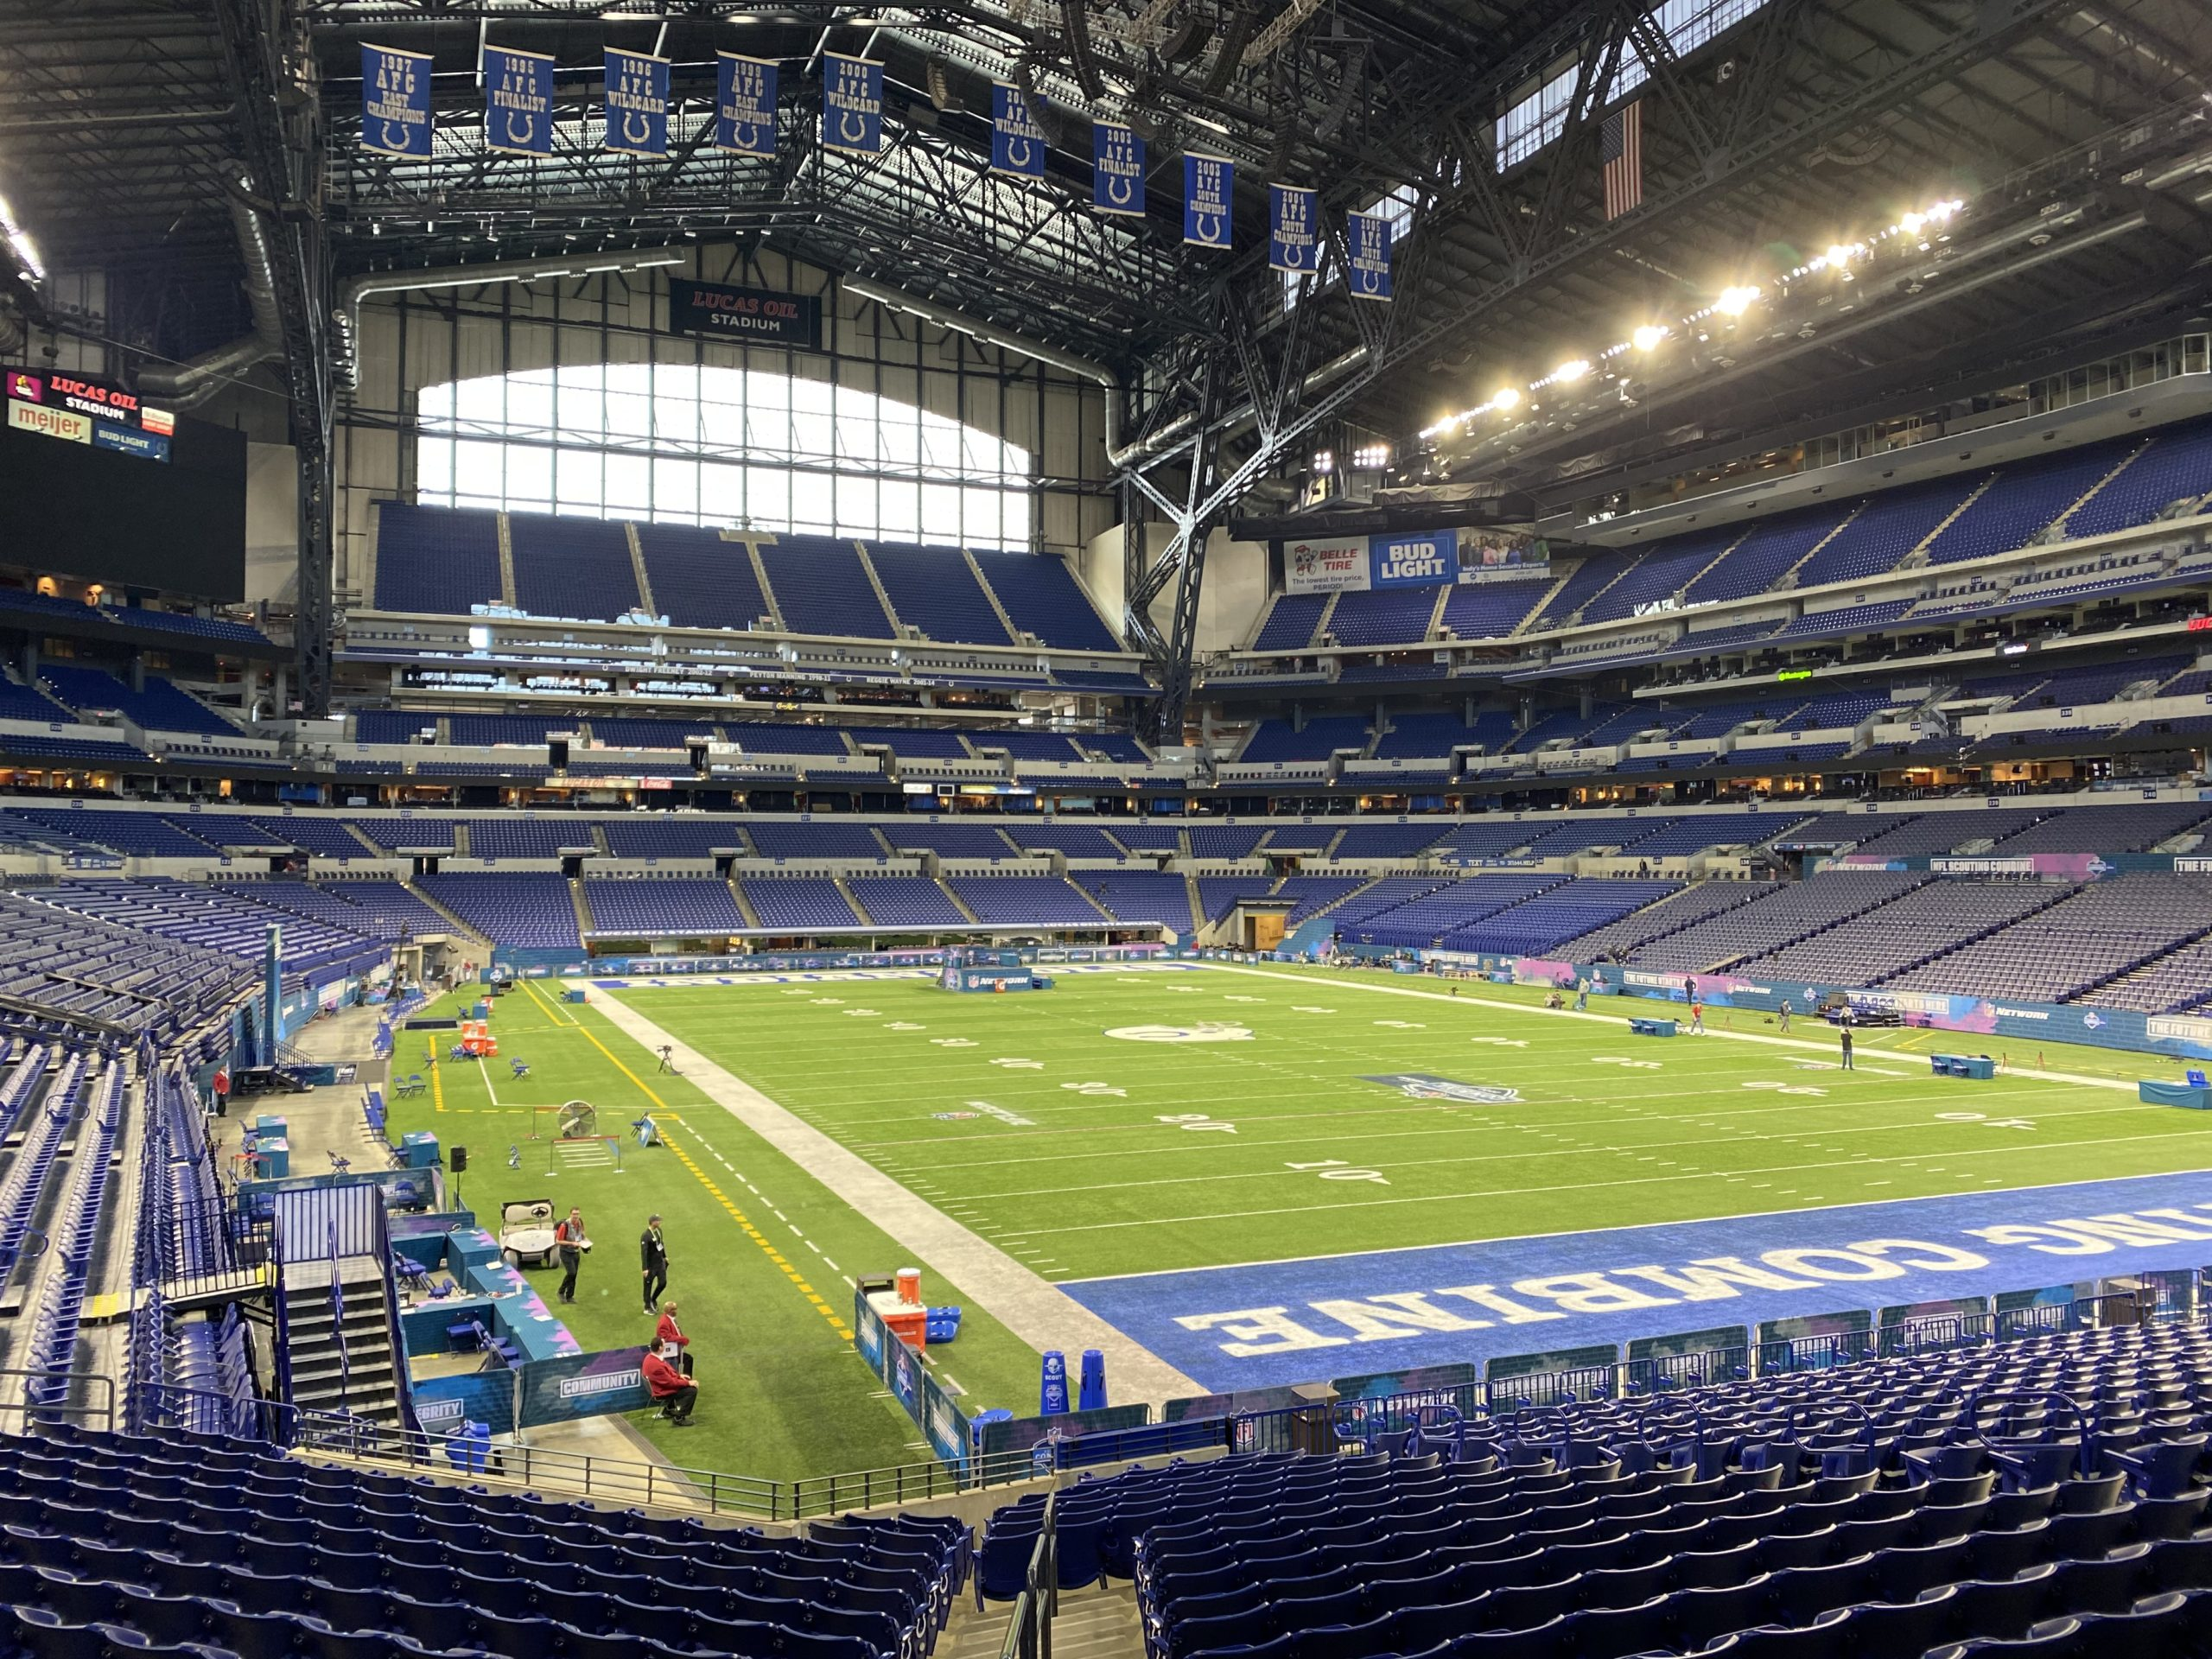 Behind the scenes at the NFL Combine